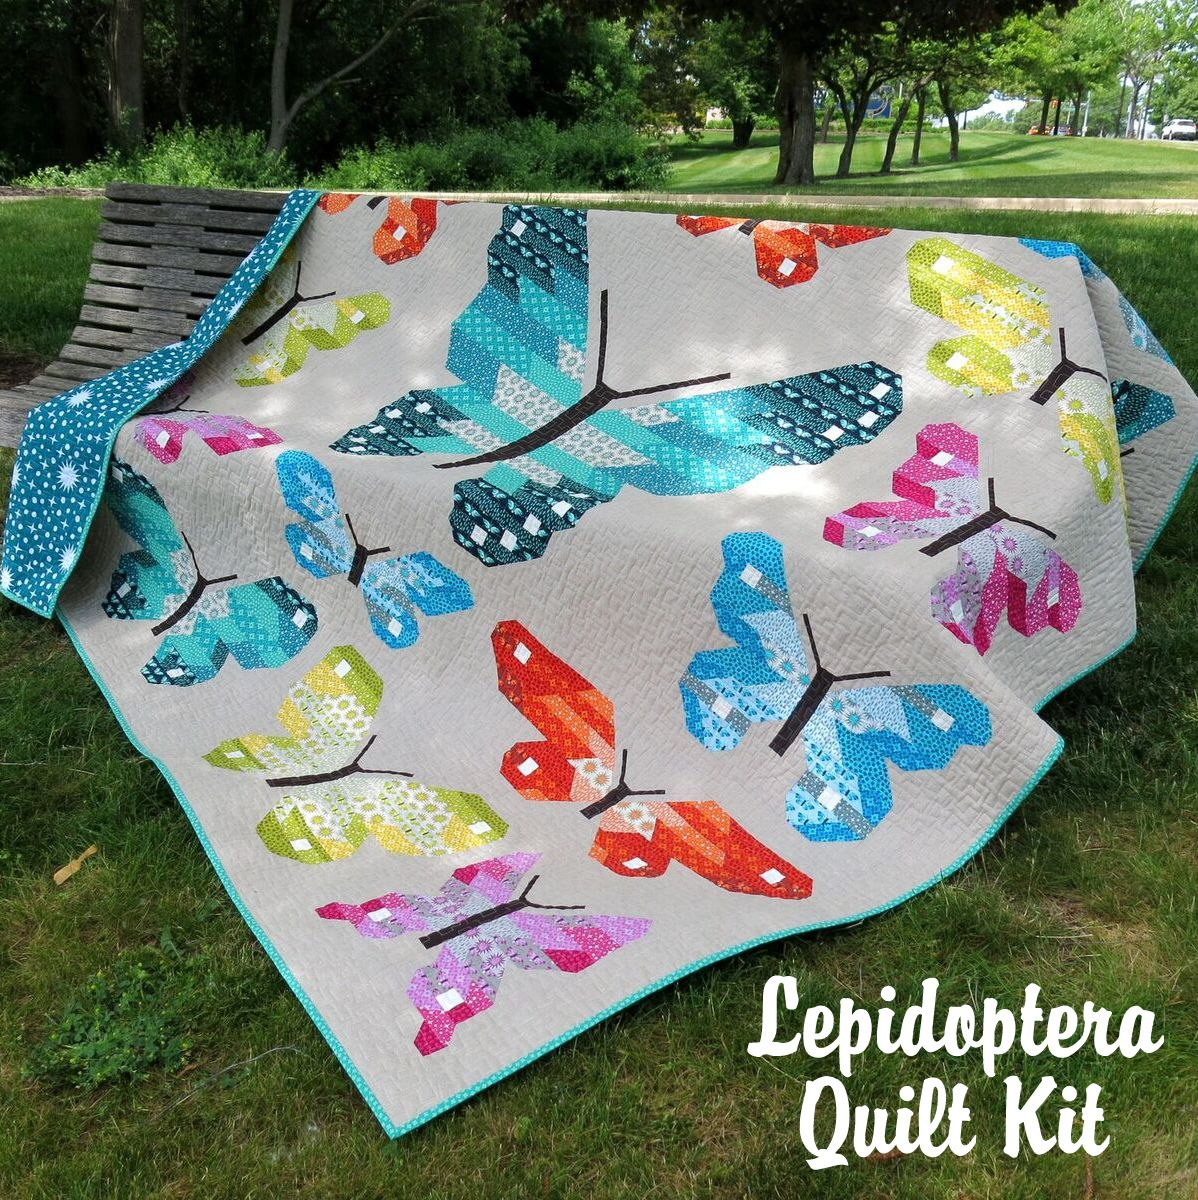 liberty homes kit craft products quilting garden love shop better quilt kits categories